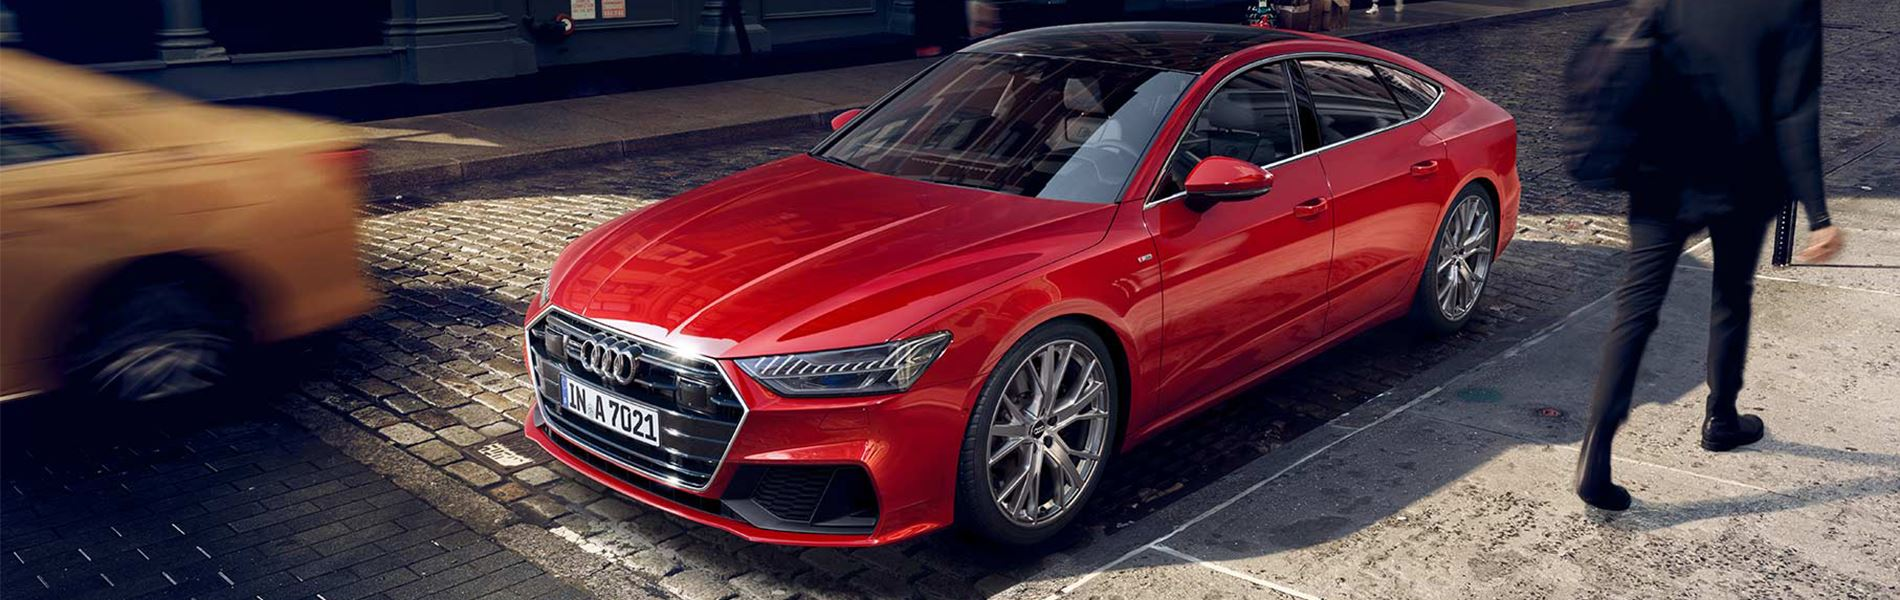 Audi A7 banner nieuwe site rood